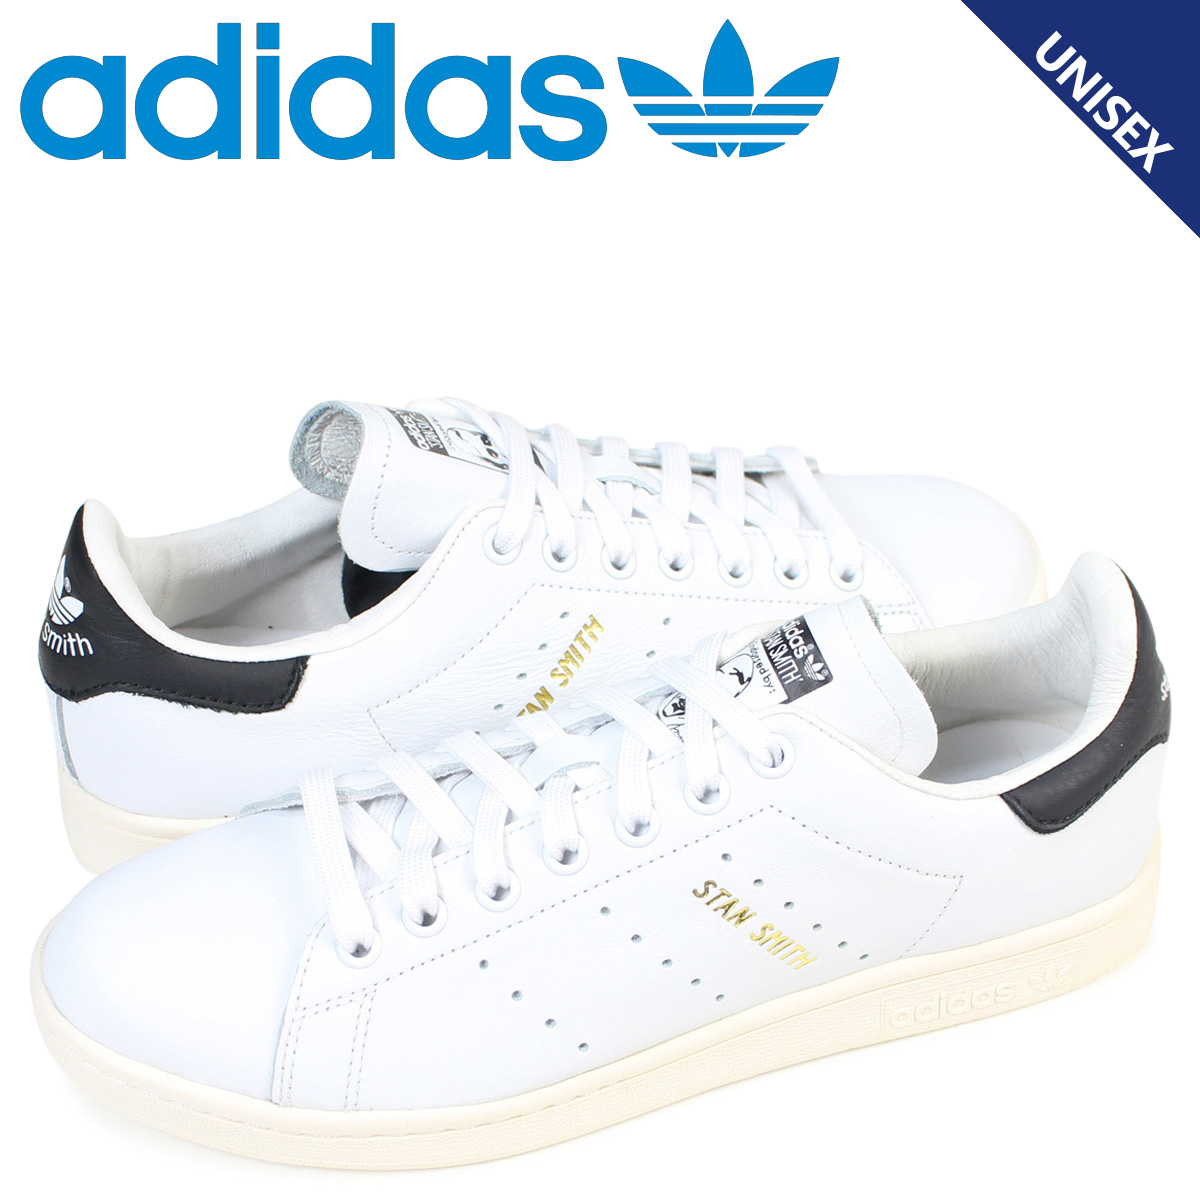 Originals Sneakers Sports Smith Adidas Stan Whats Up wTXHqBnz